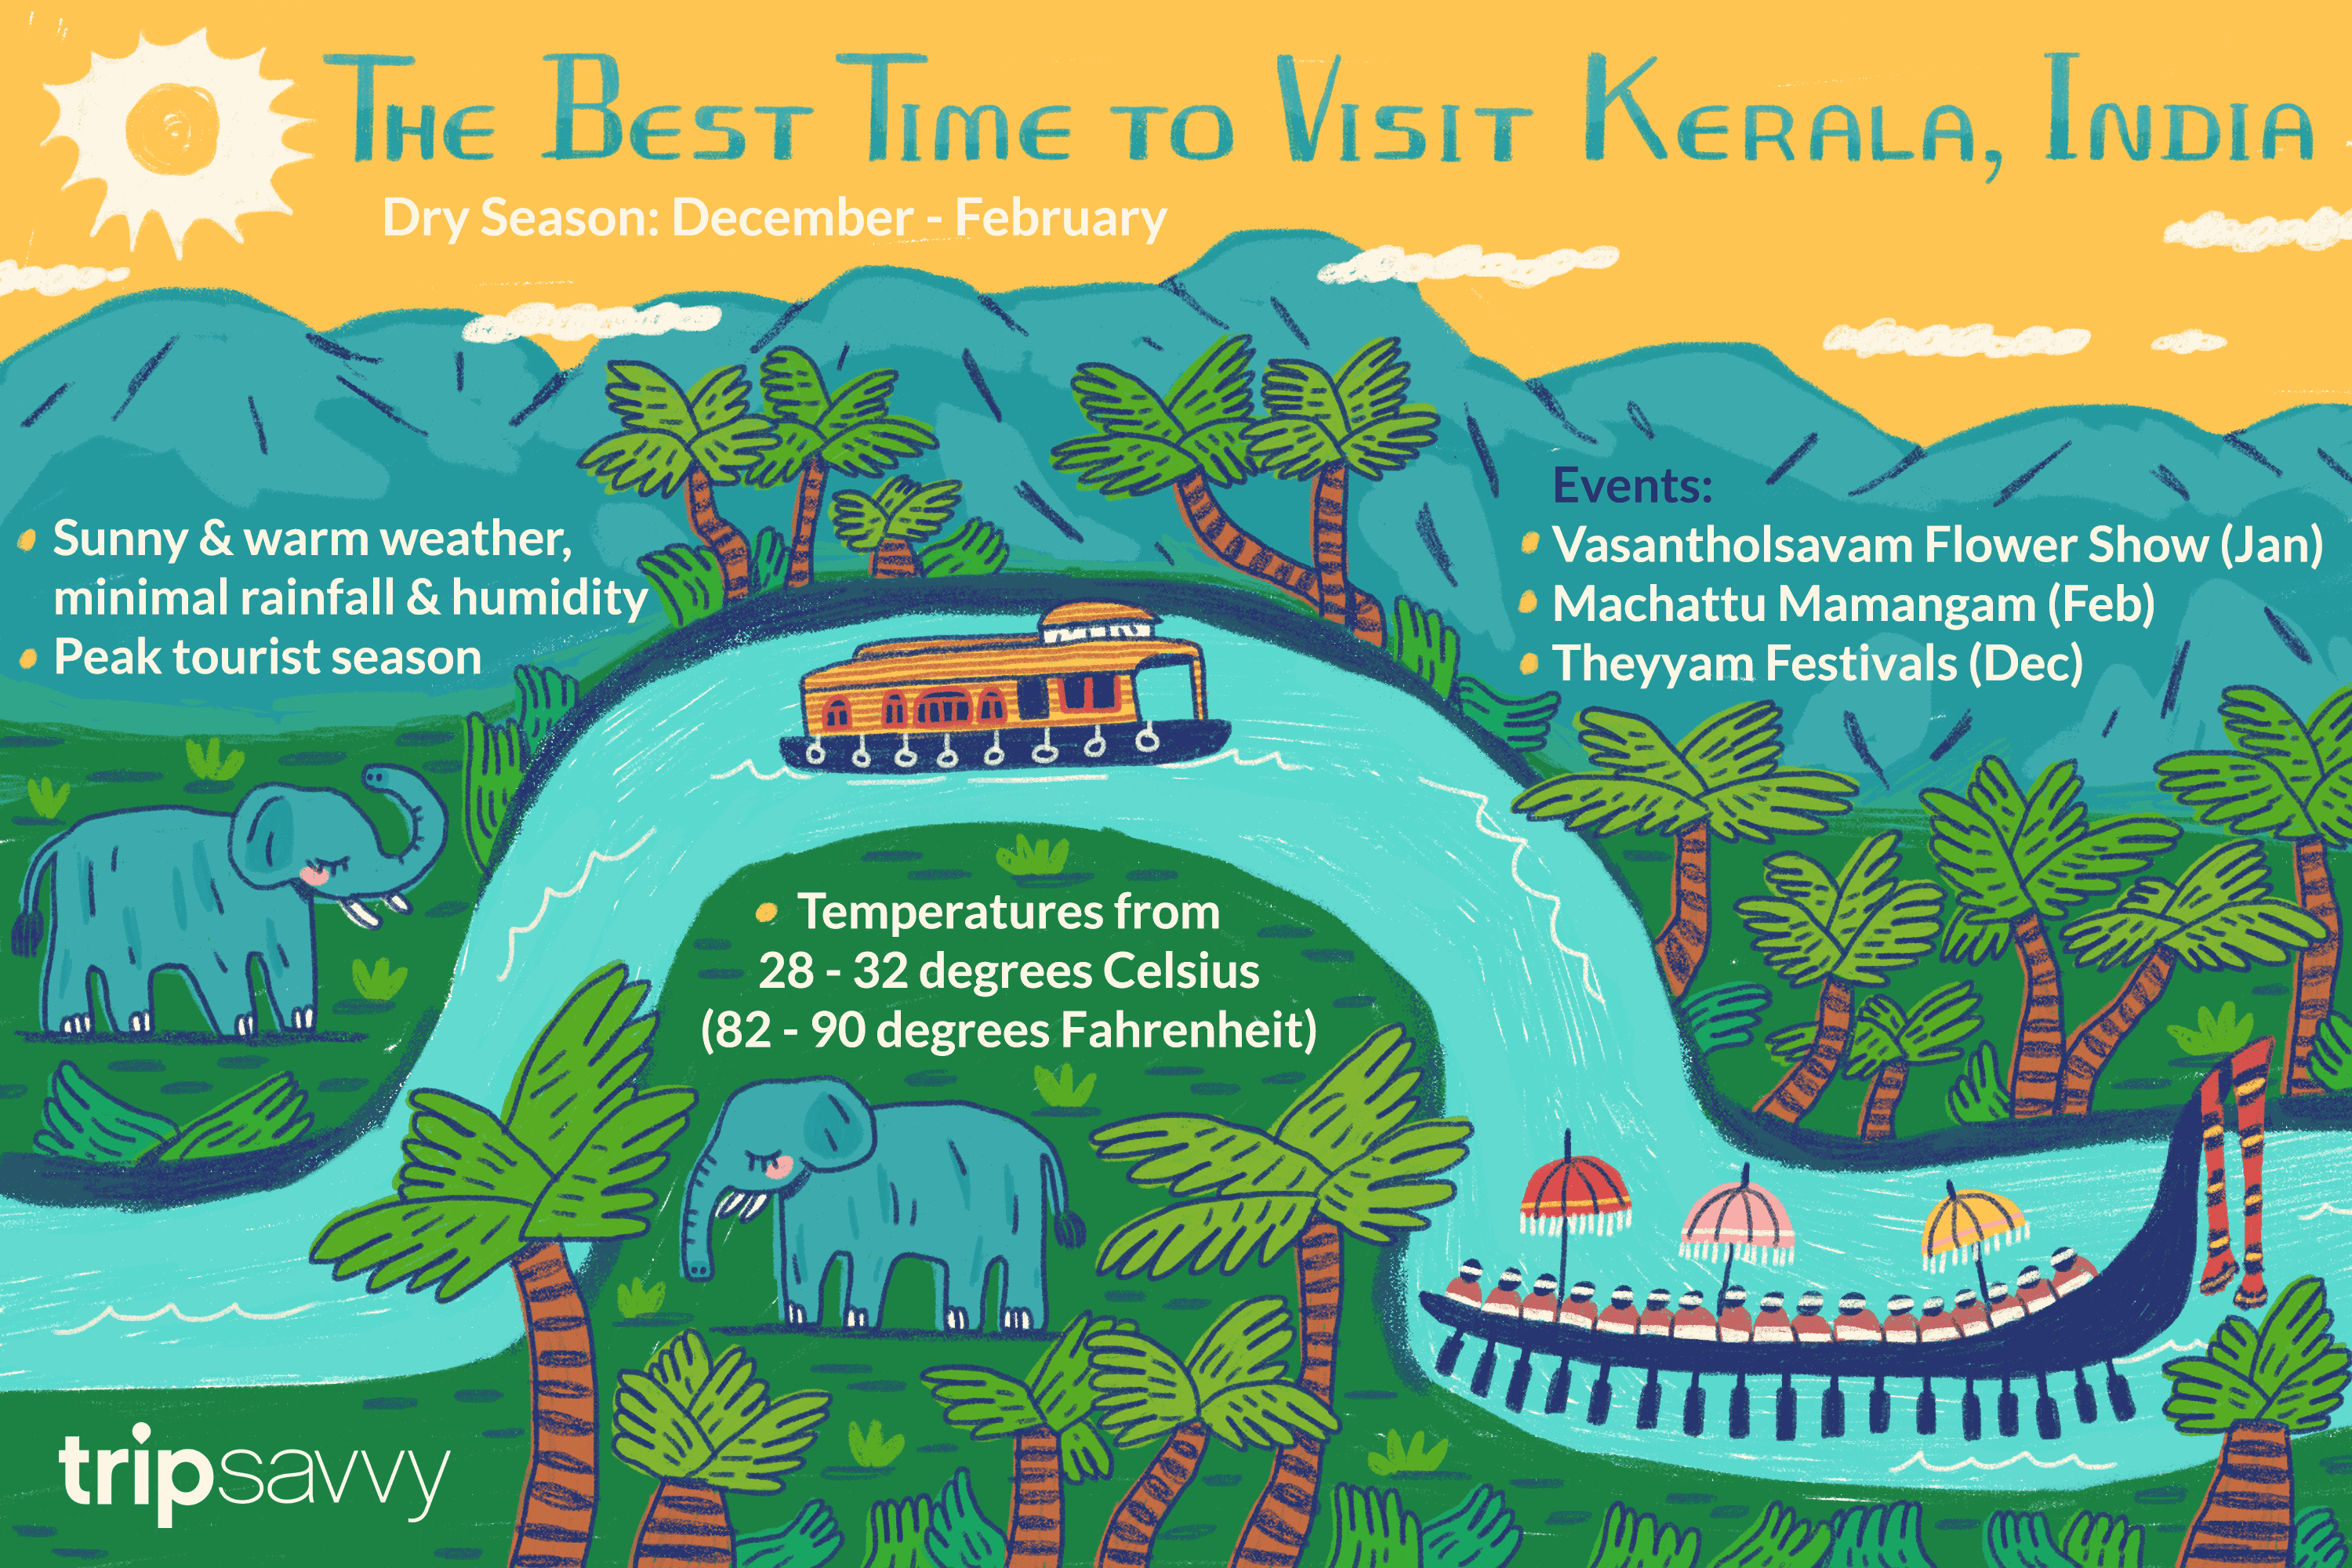 The Best Time to Visit Kerala, India